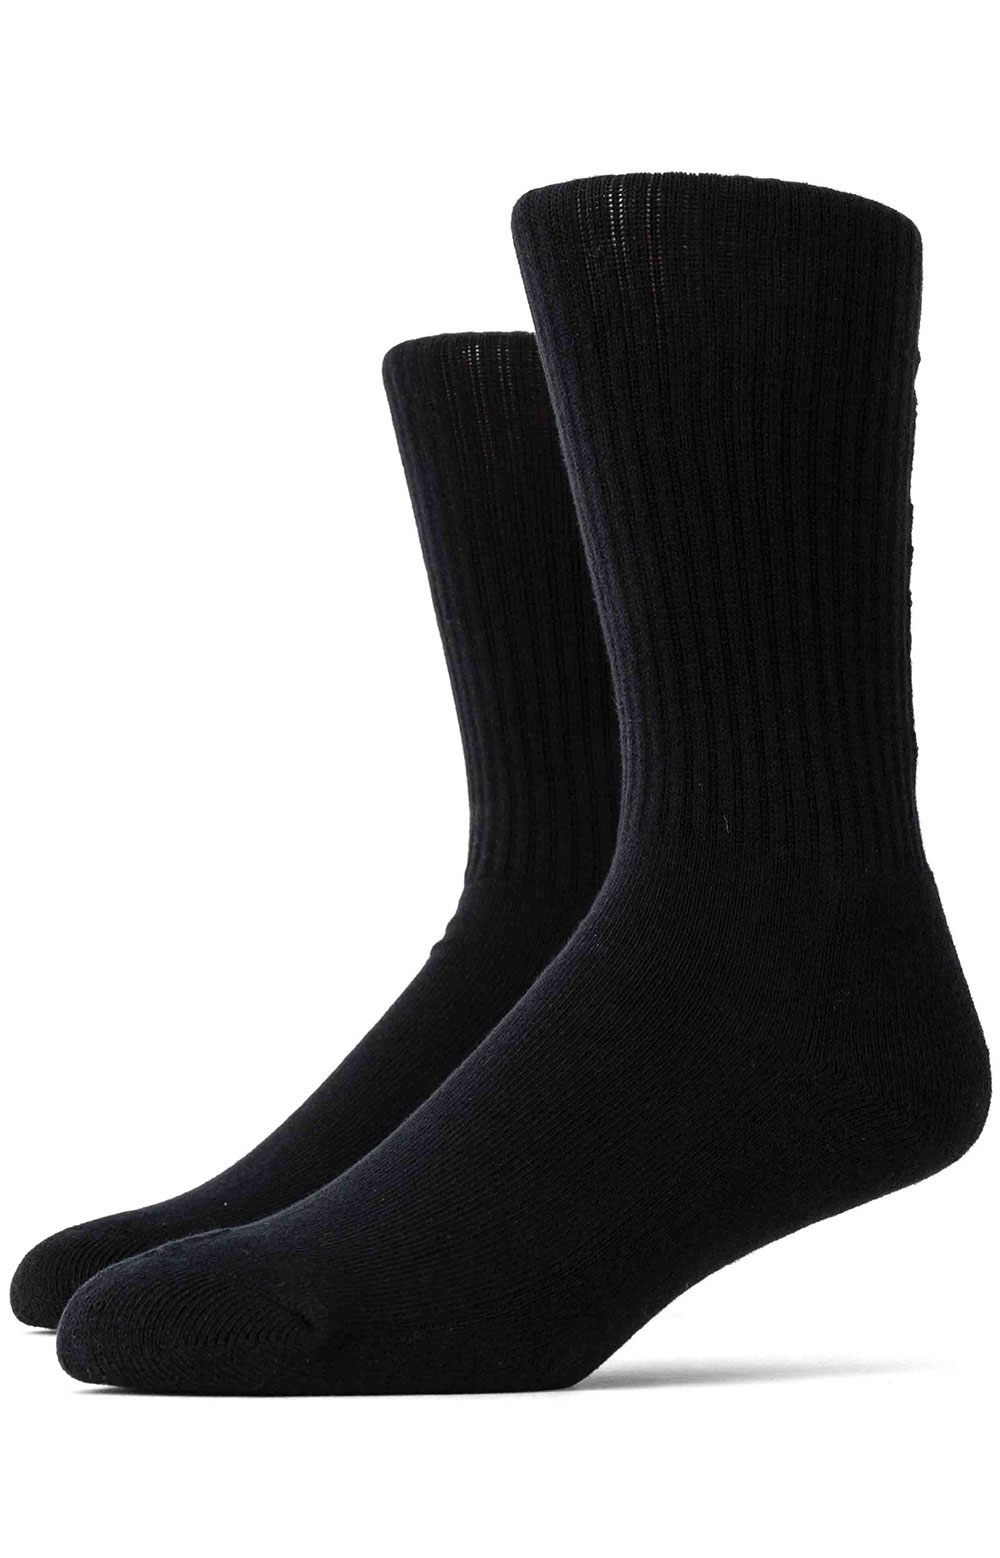 Standard Logo Middle  Socks - Black 2